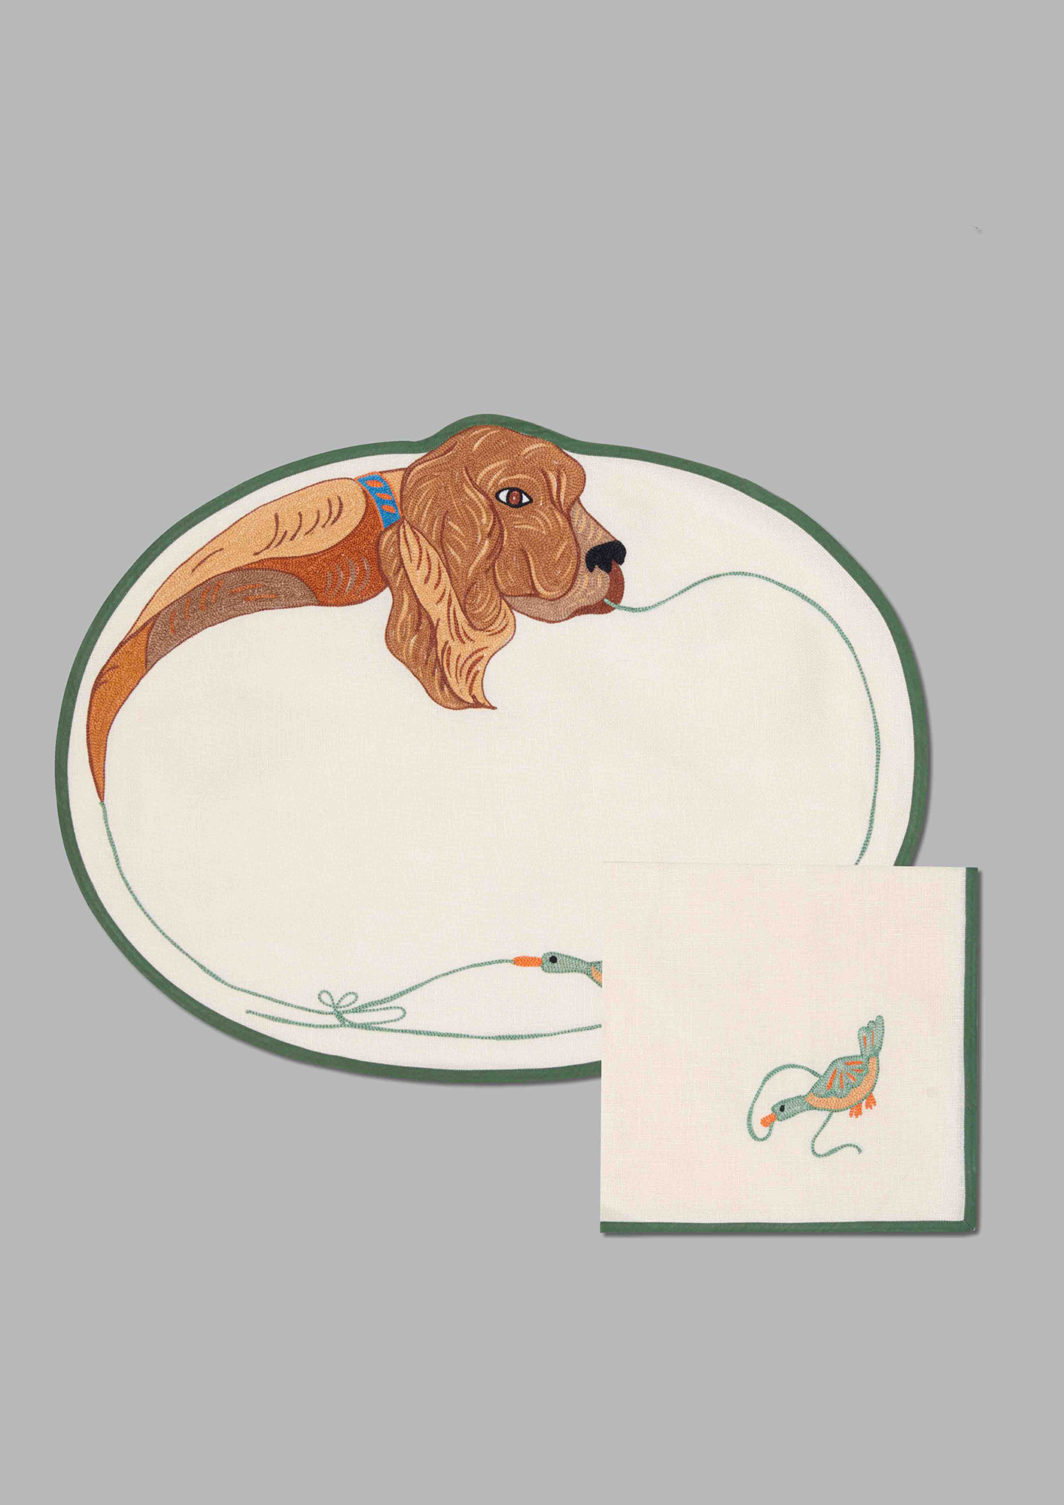 DOGS PLACEMAT SET OF 2